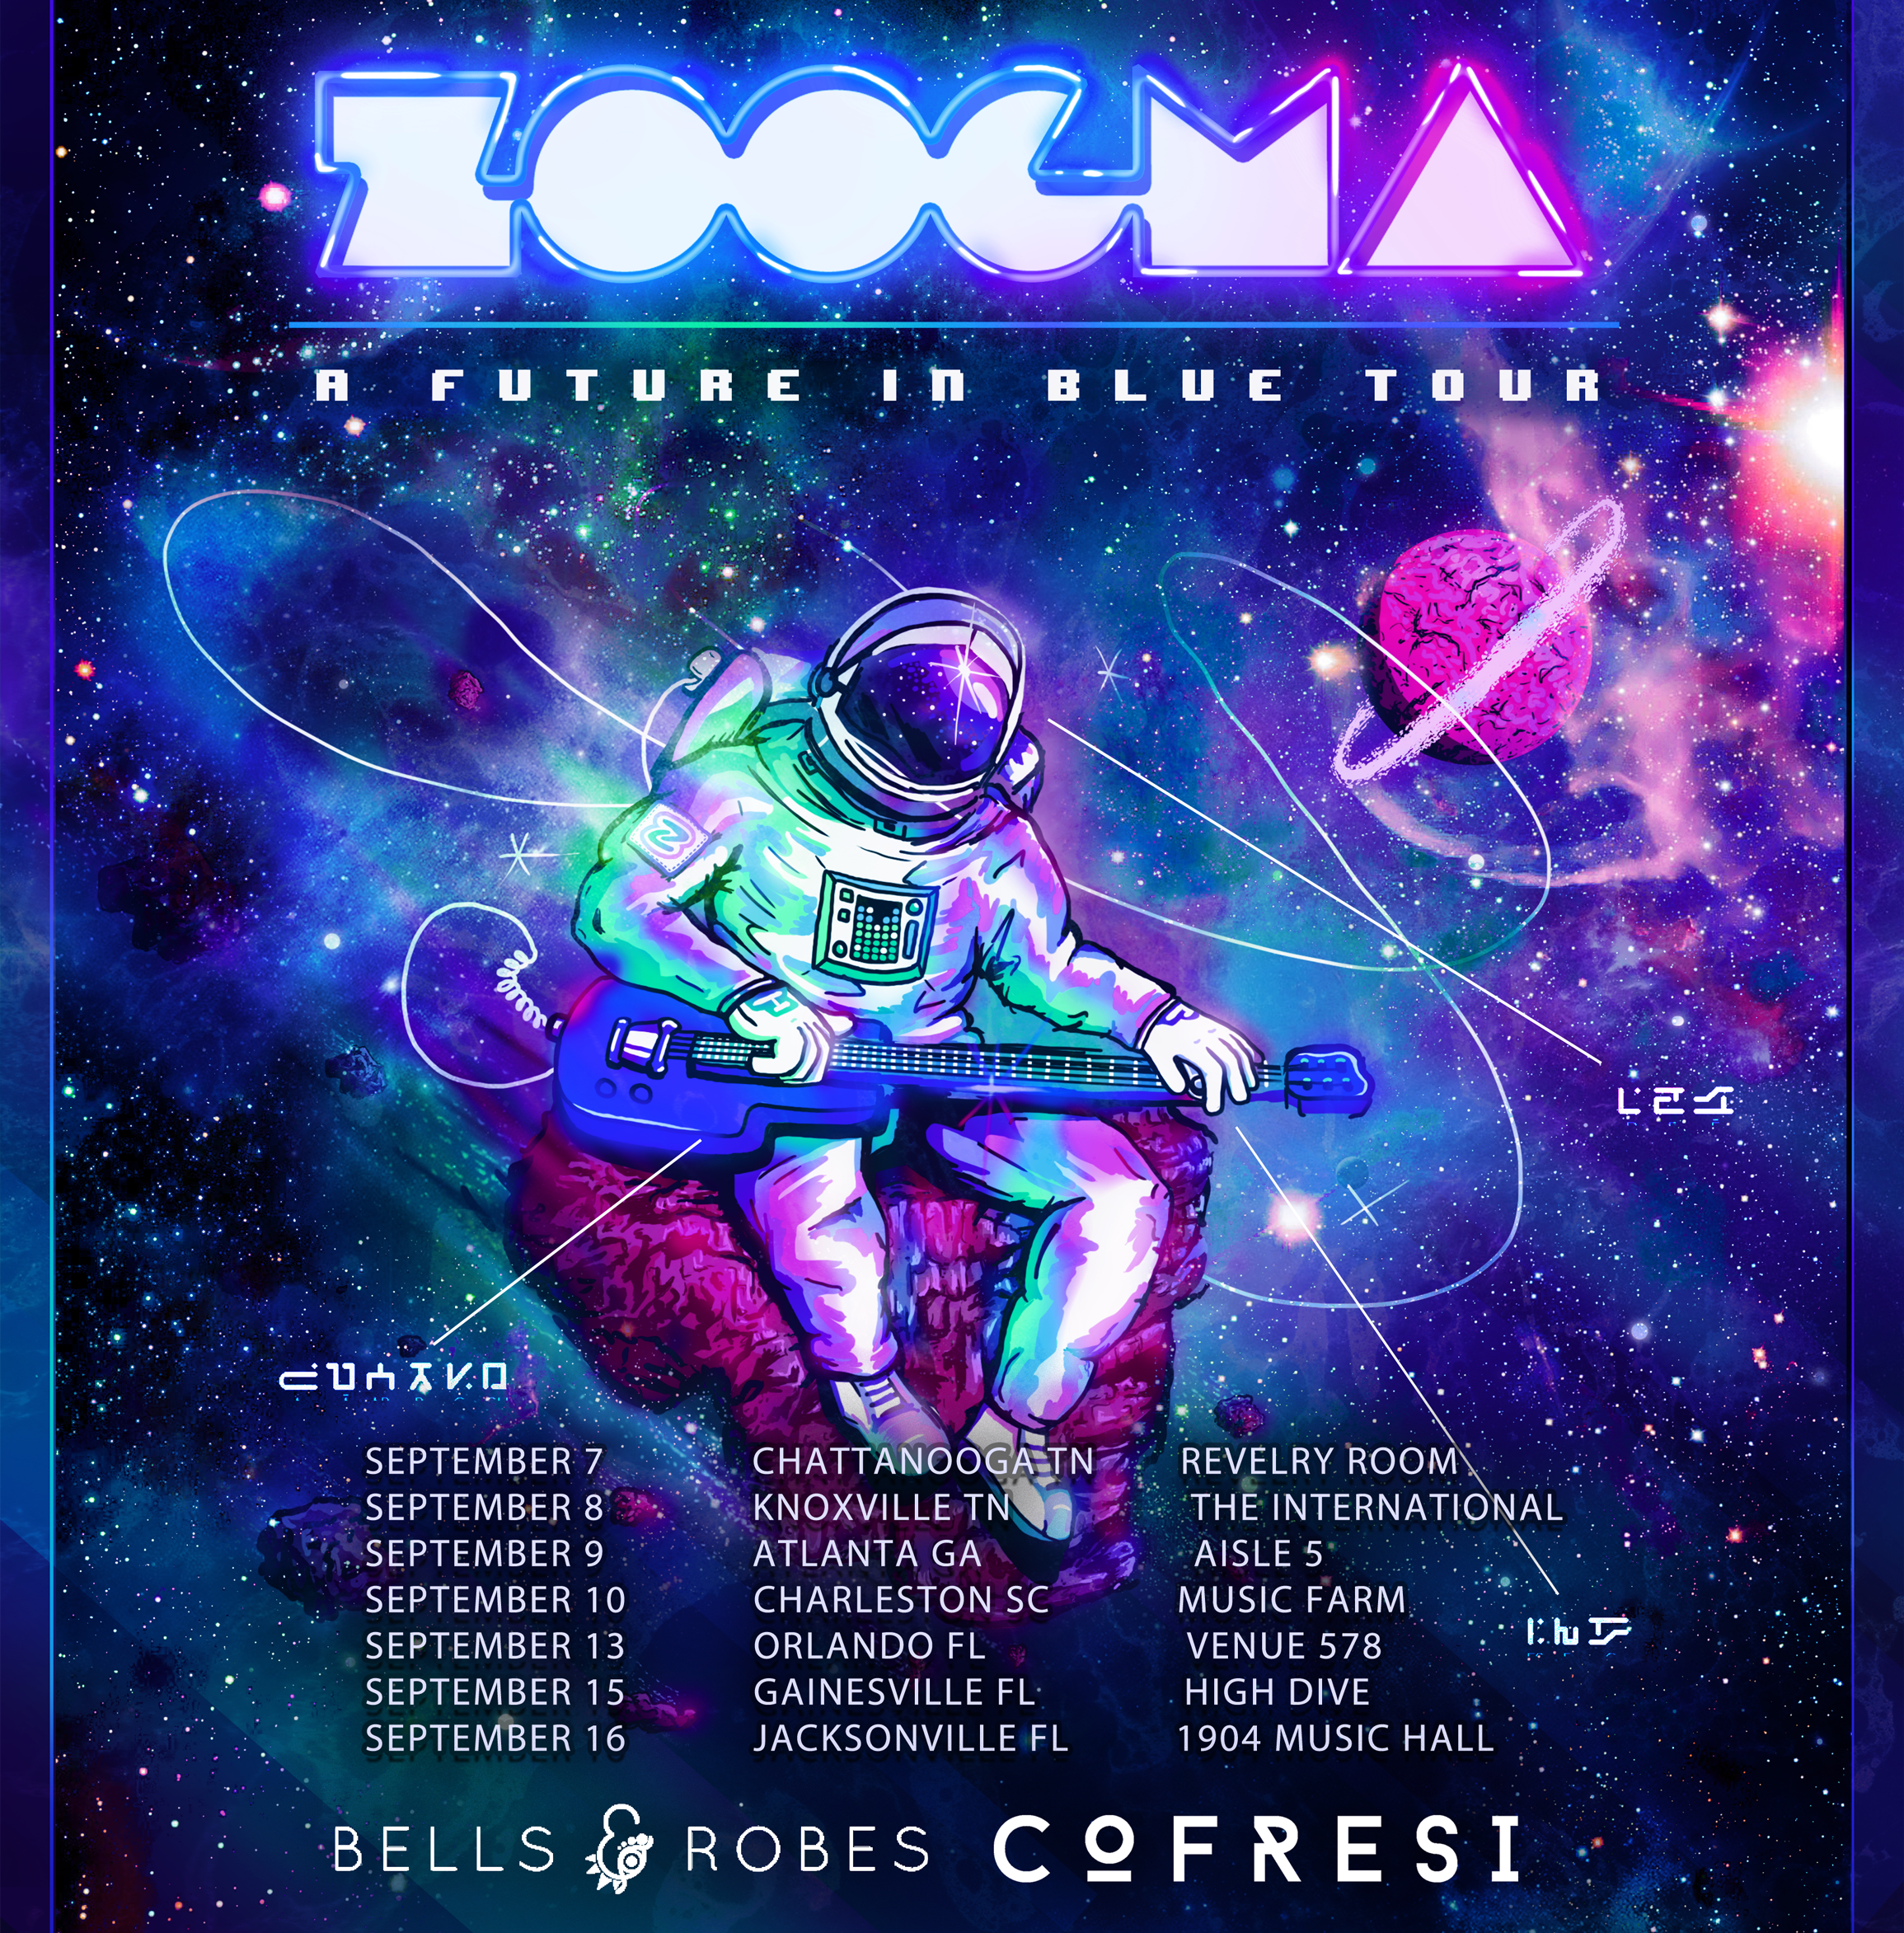 zoogma-B&R-cofresi-dates-square.png